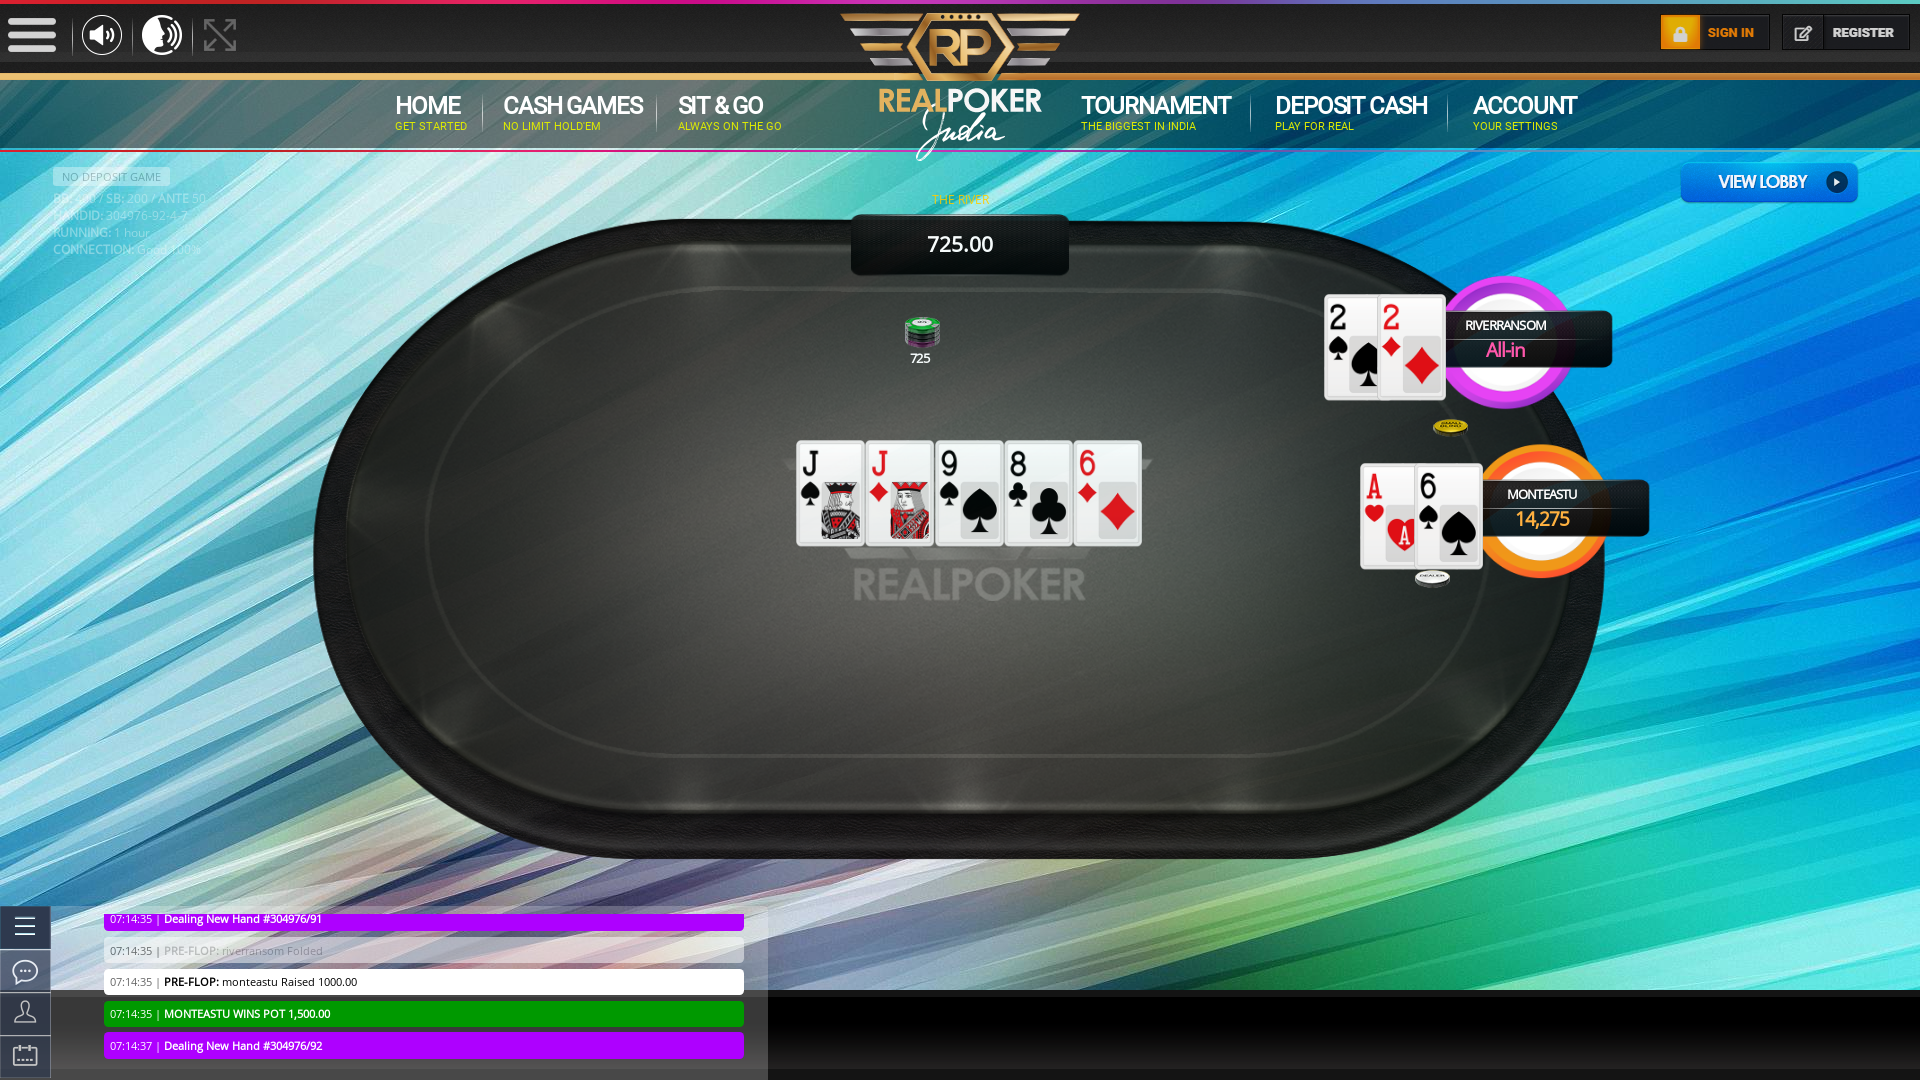 10 player texas holdem table at real poker with the table id 304976